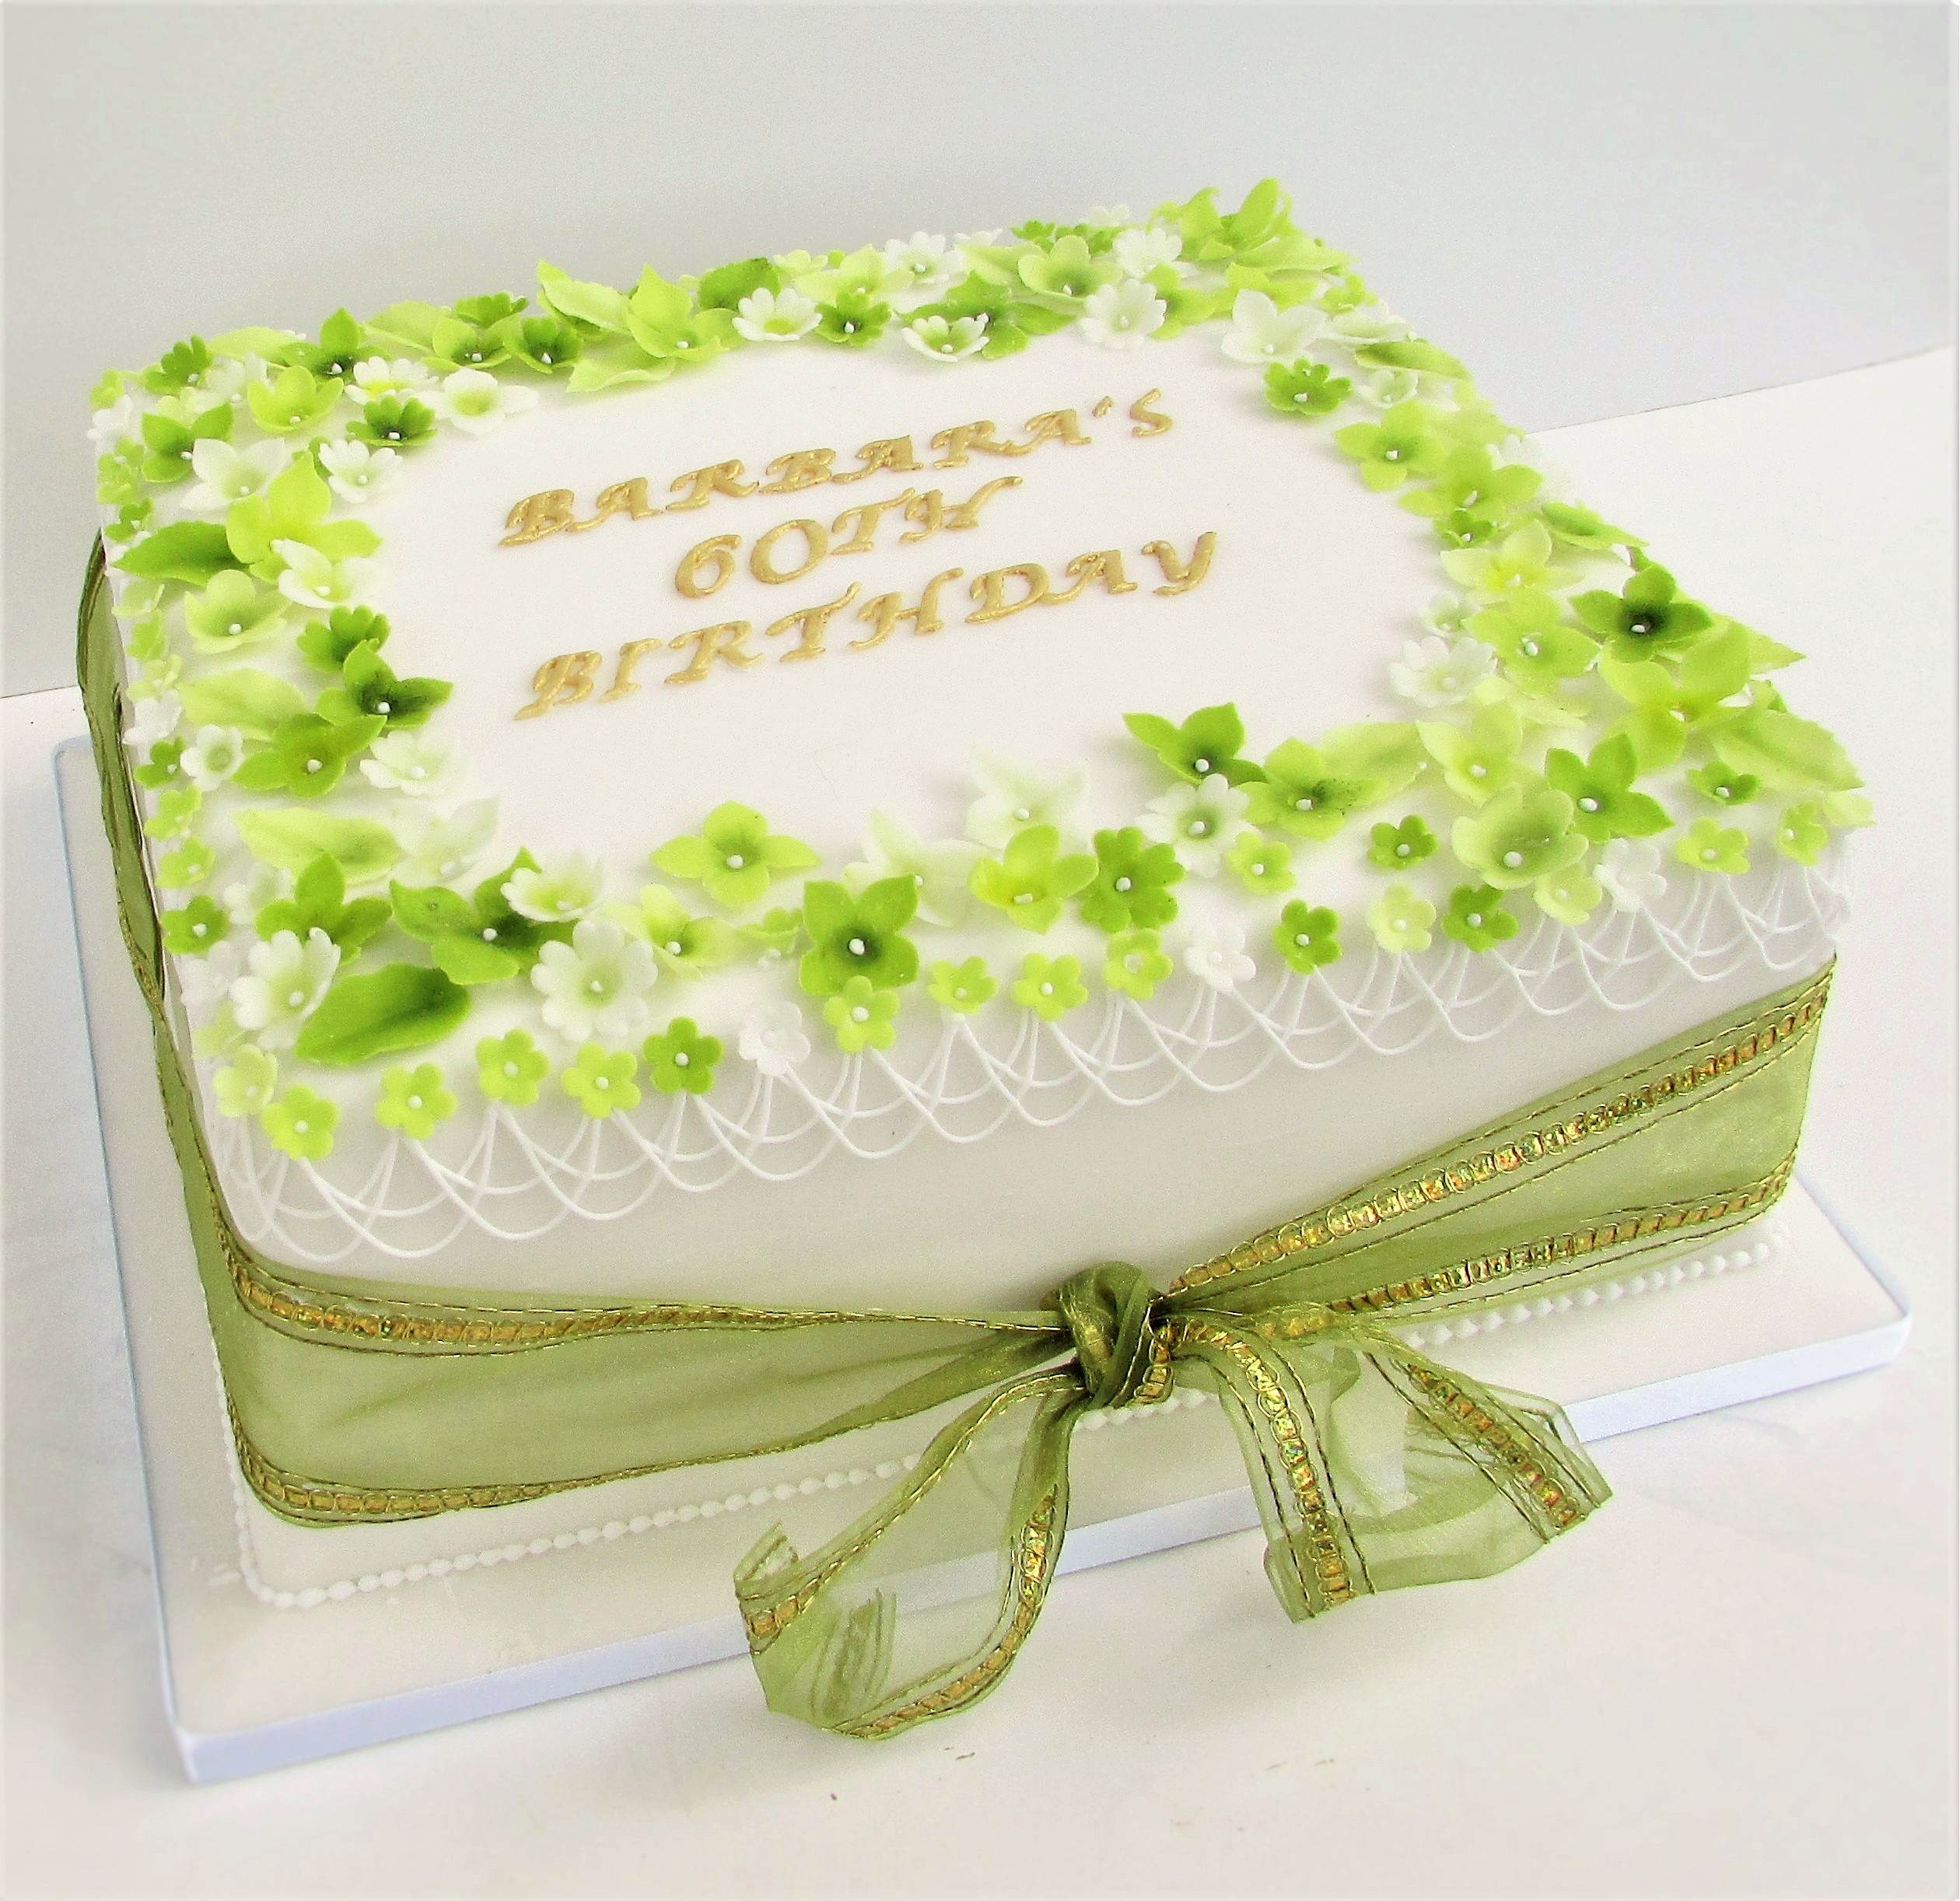 White party cake decorated with green sugar blossoms